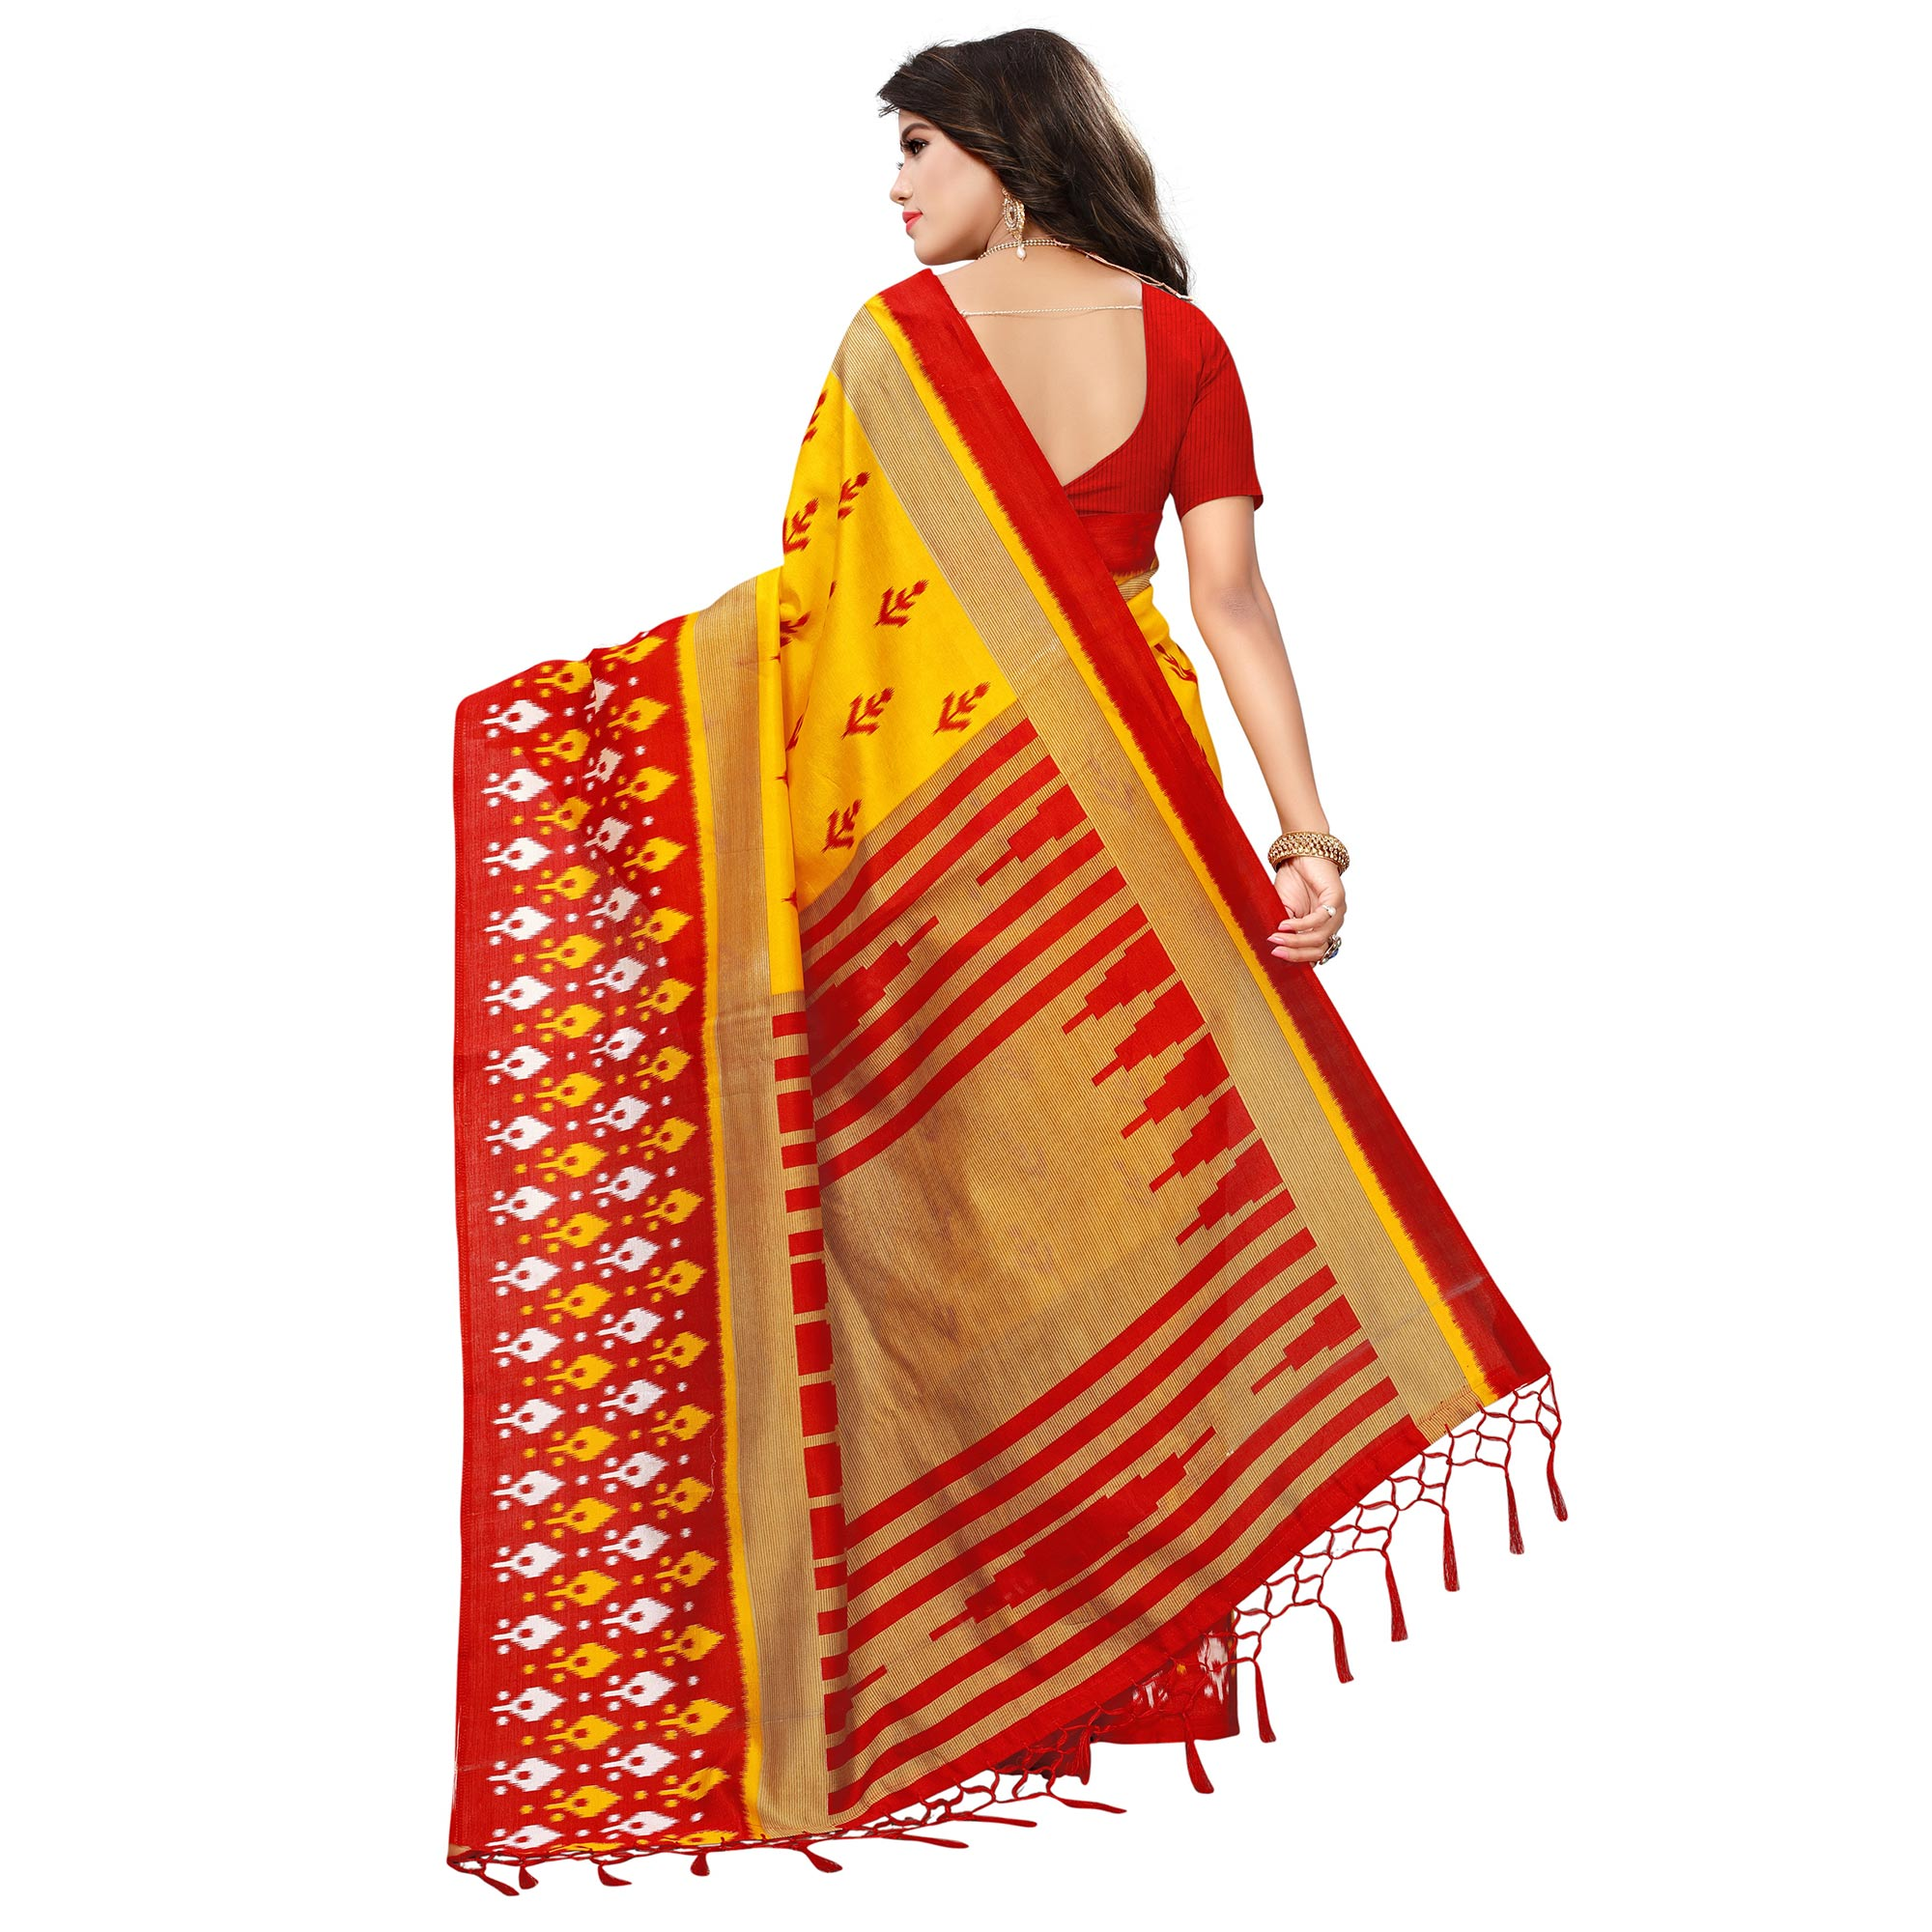 Appealing Yellow-Red Colored Printed Festive Wear Mysore Art Silk Saree